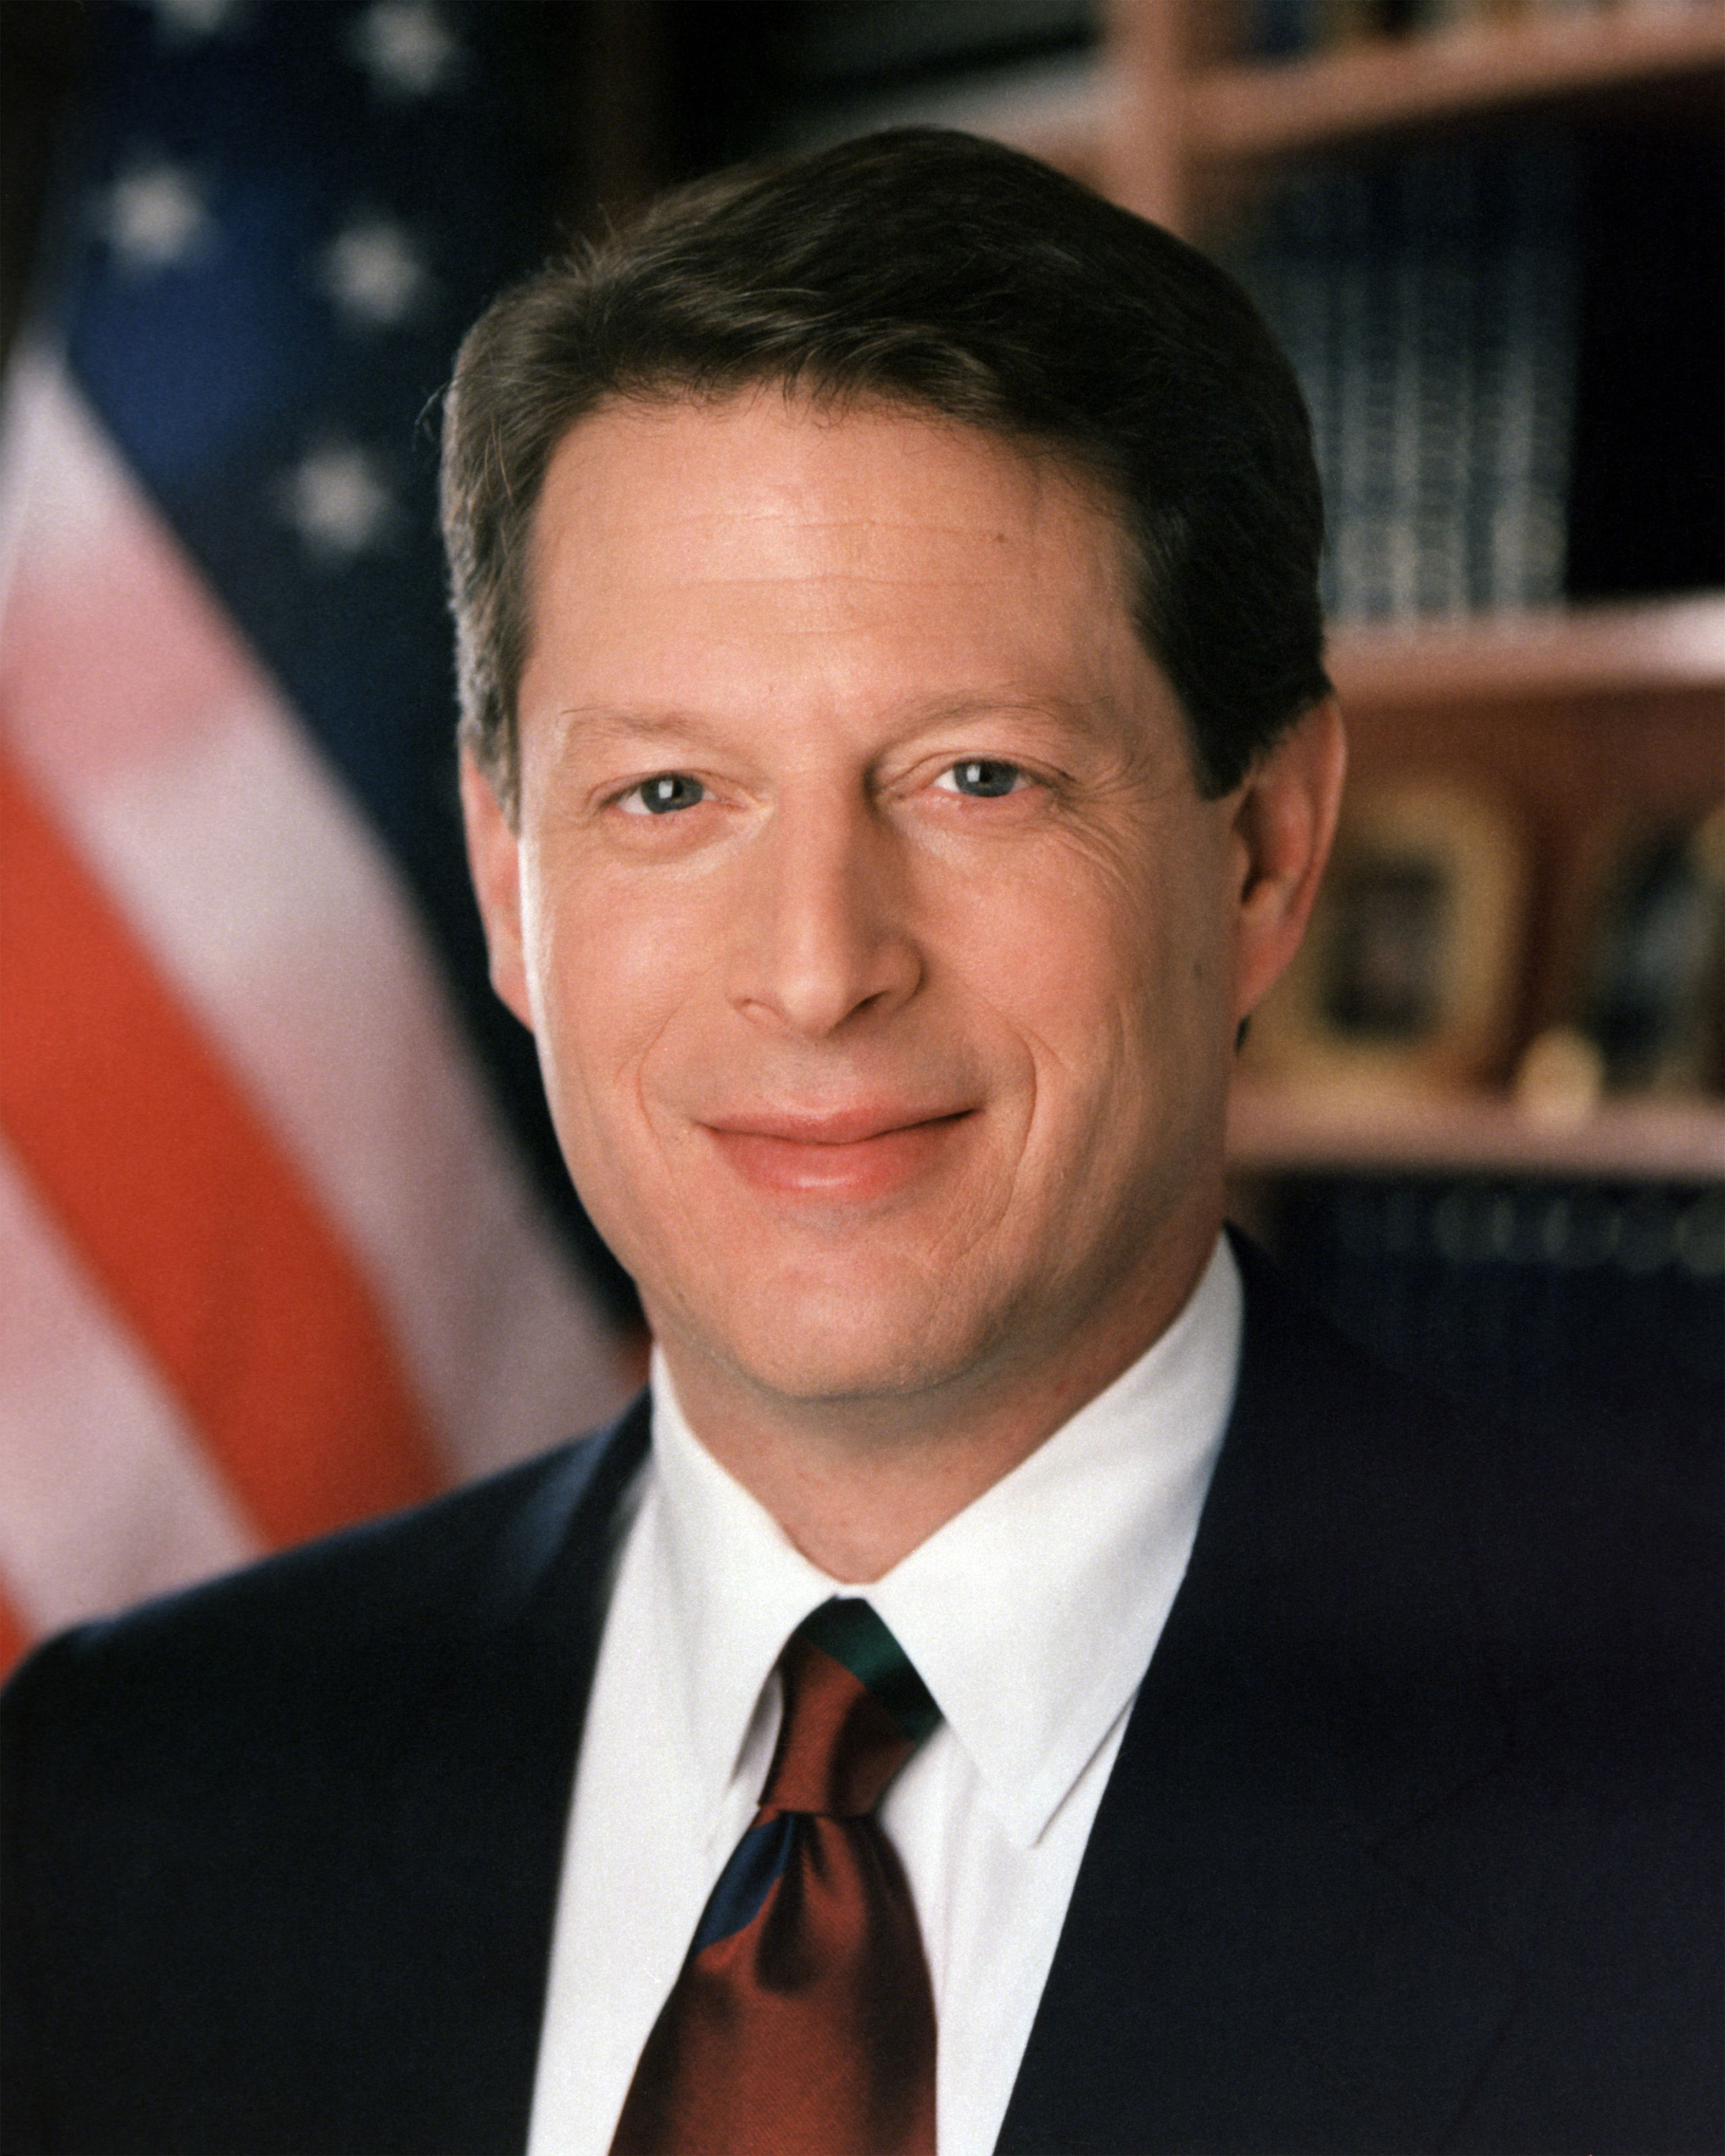 Al Gore - Wikipedia, the free encyclopedia